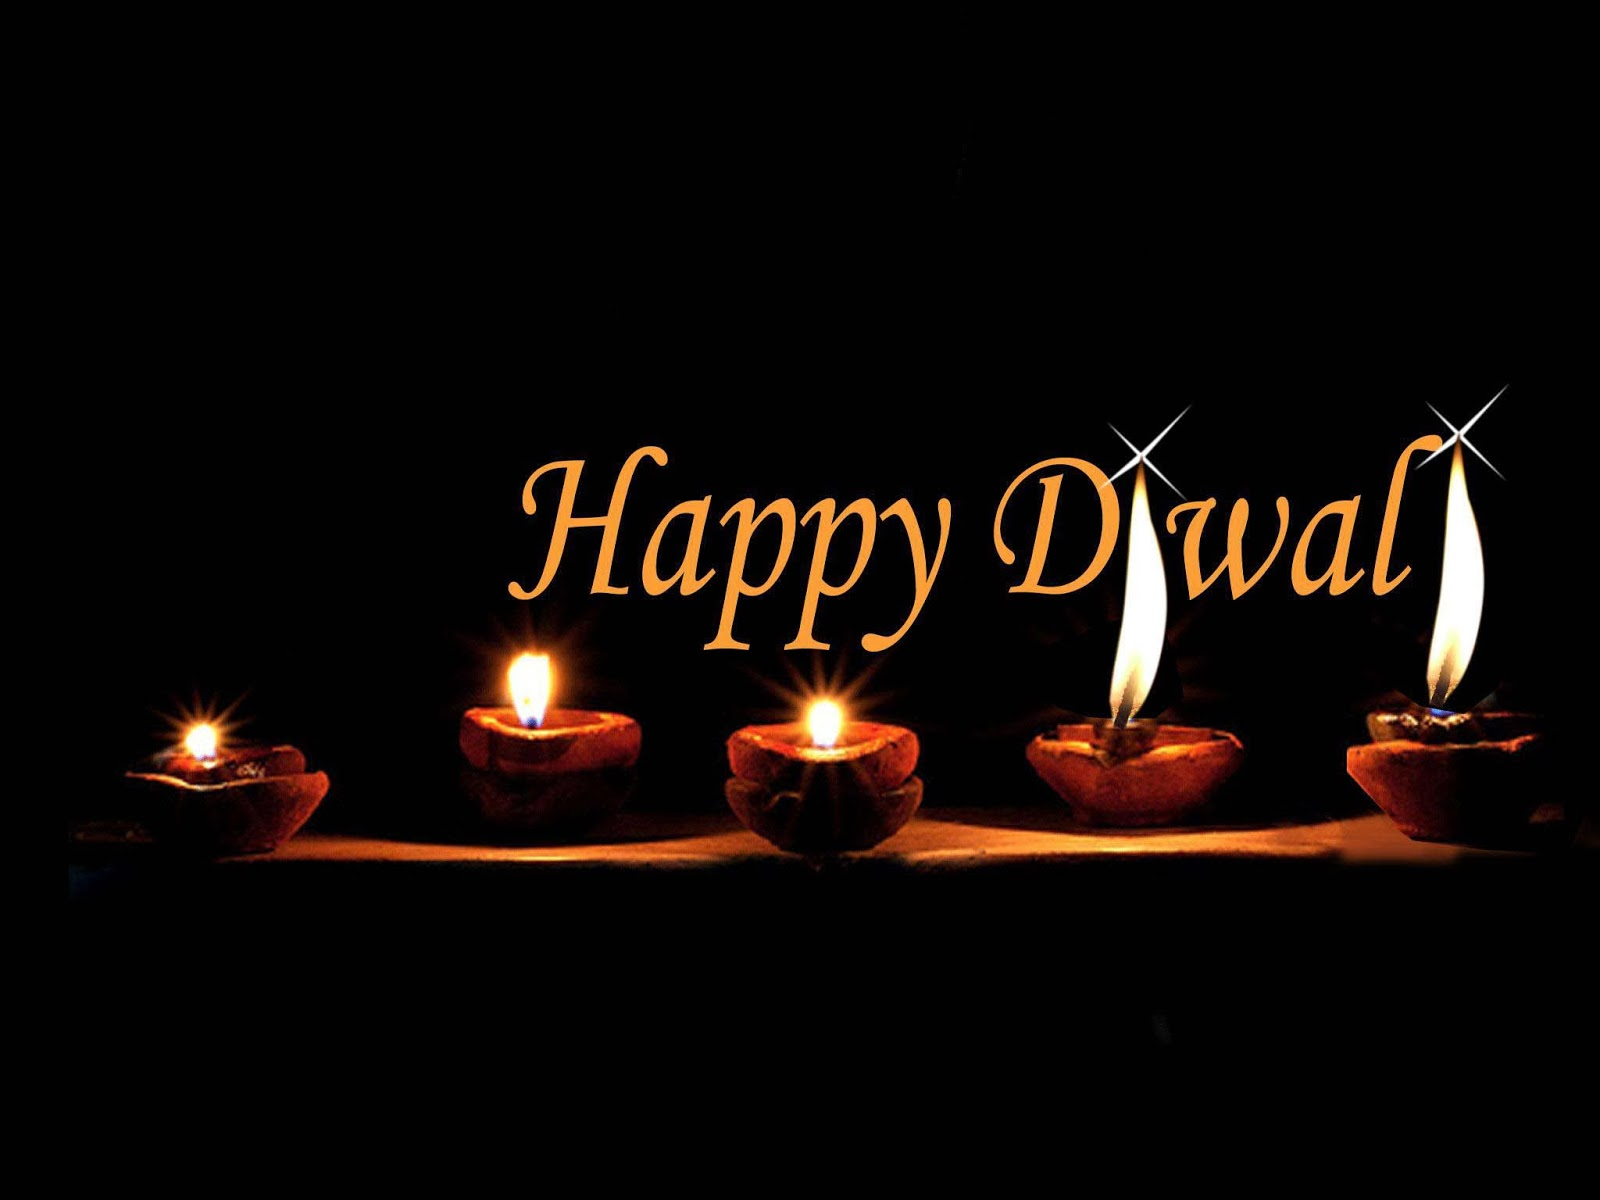 Khushi For Life Stylish Happy Diwali Hd Wishes Images In 3d Effect